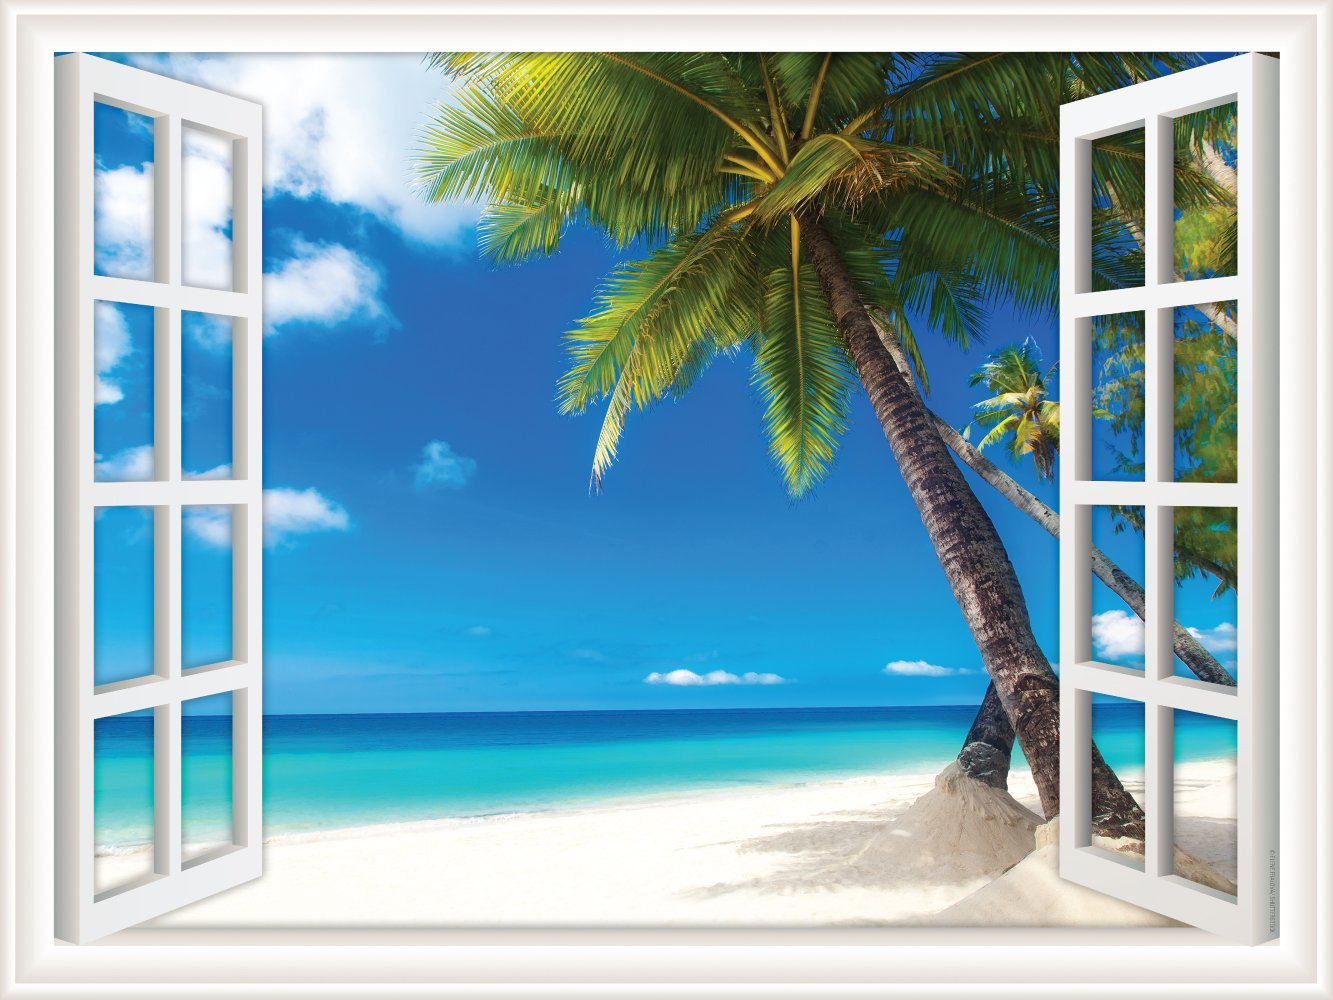 Walls 360 Peel & Stick Wall Decal Window Views Palm Tree on White Sand Ocean Beach (60 in x 45 in)